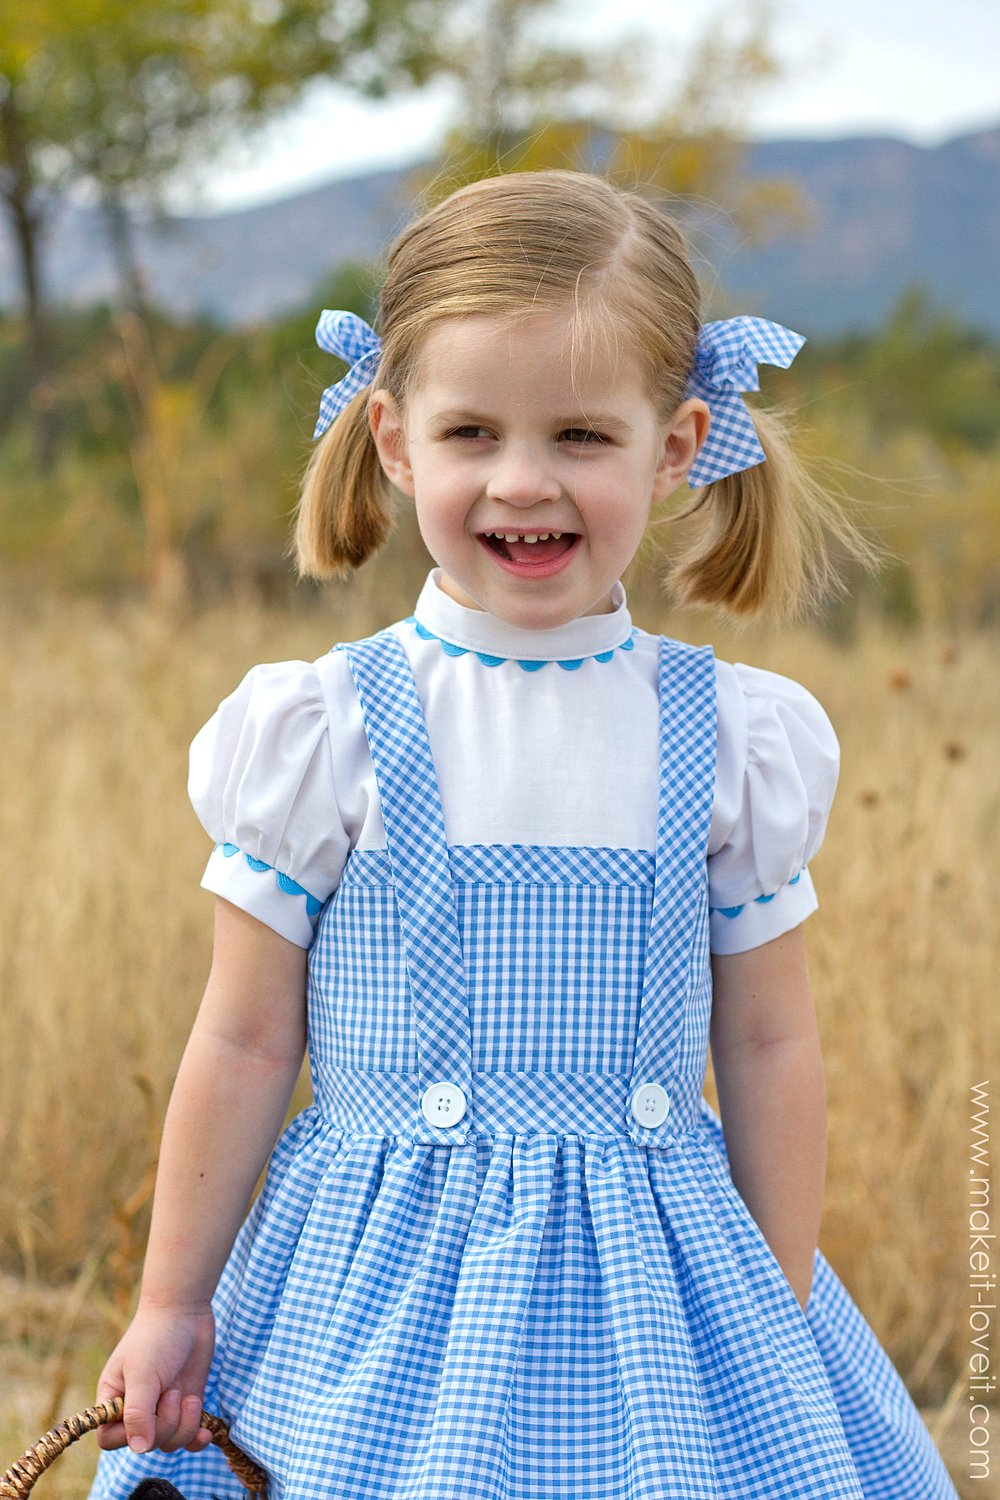 diy dorothy costume from wizard of oz via make it and love it